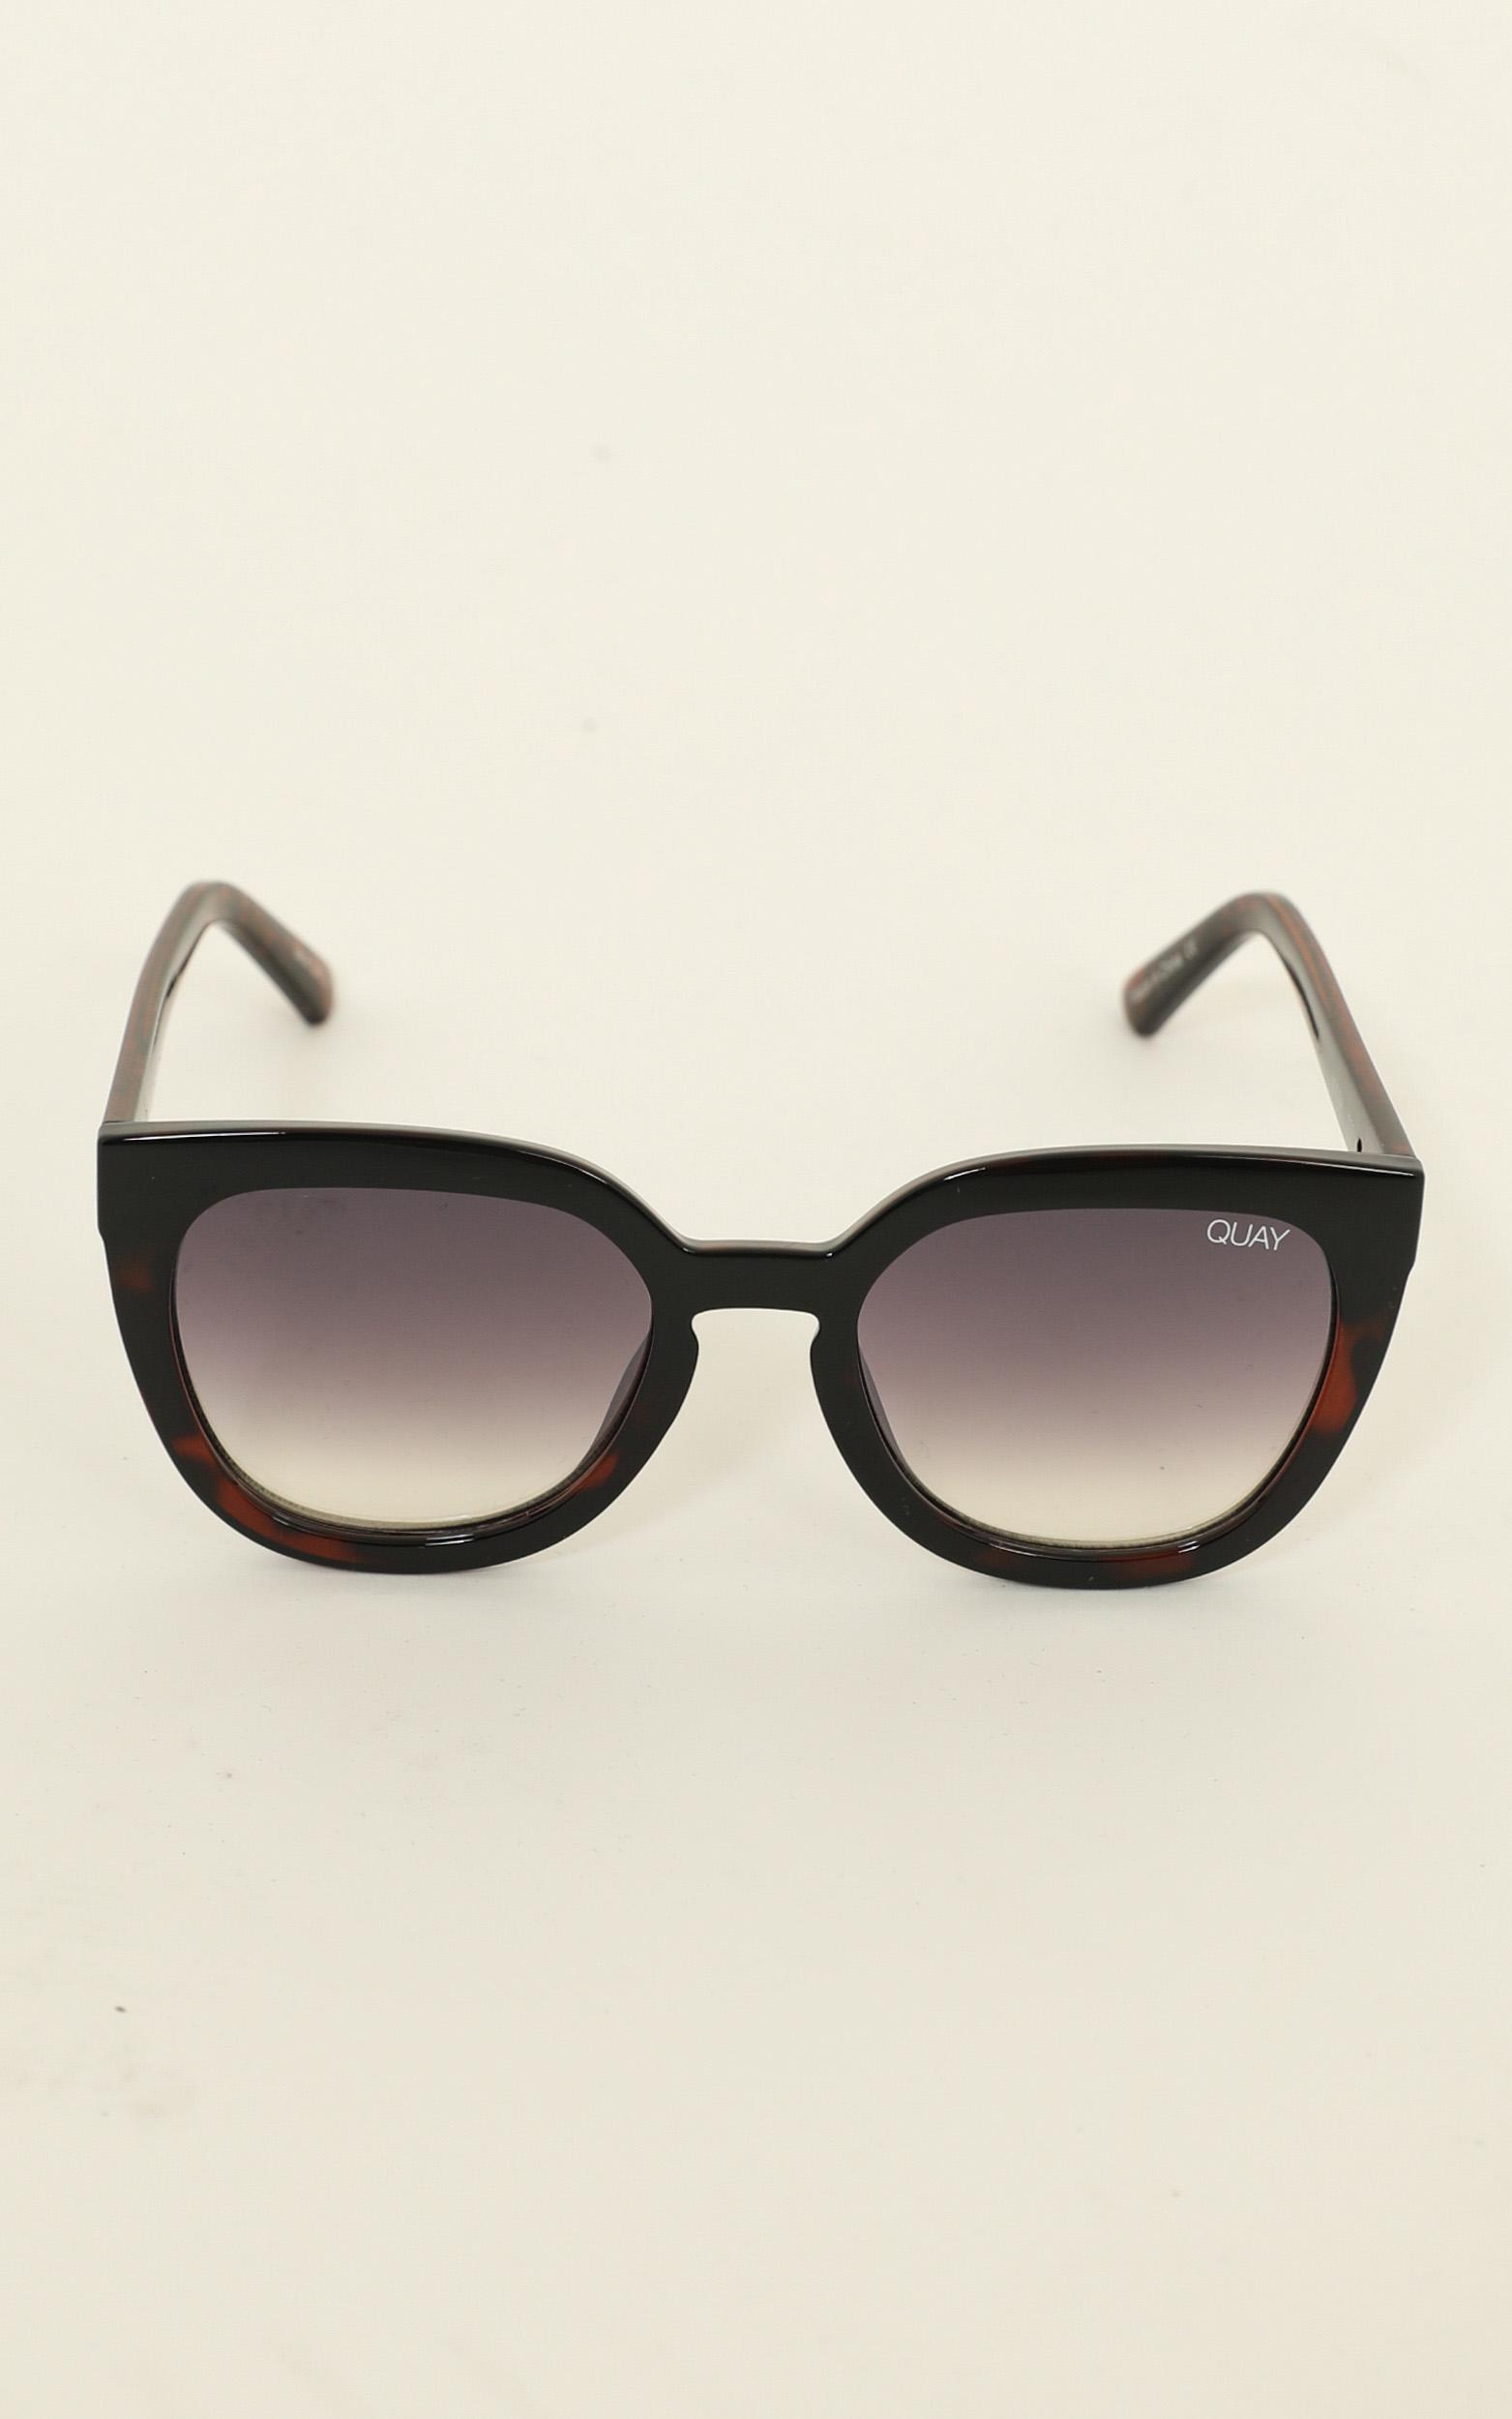 Quay - Noosa Sunglasses In Black And Tort, , hi-res image number null